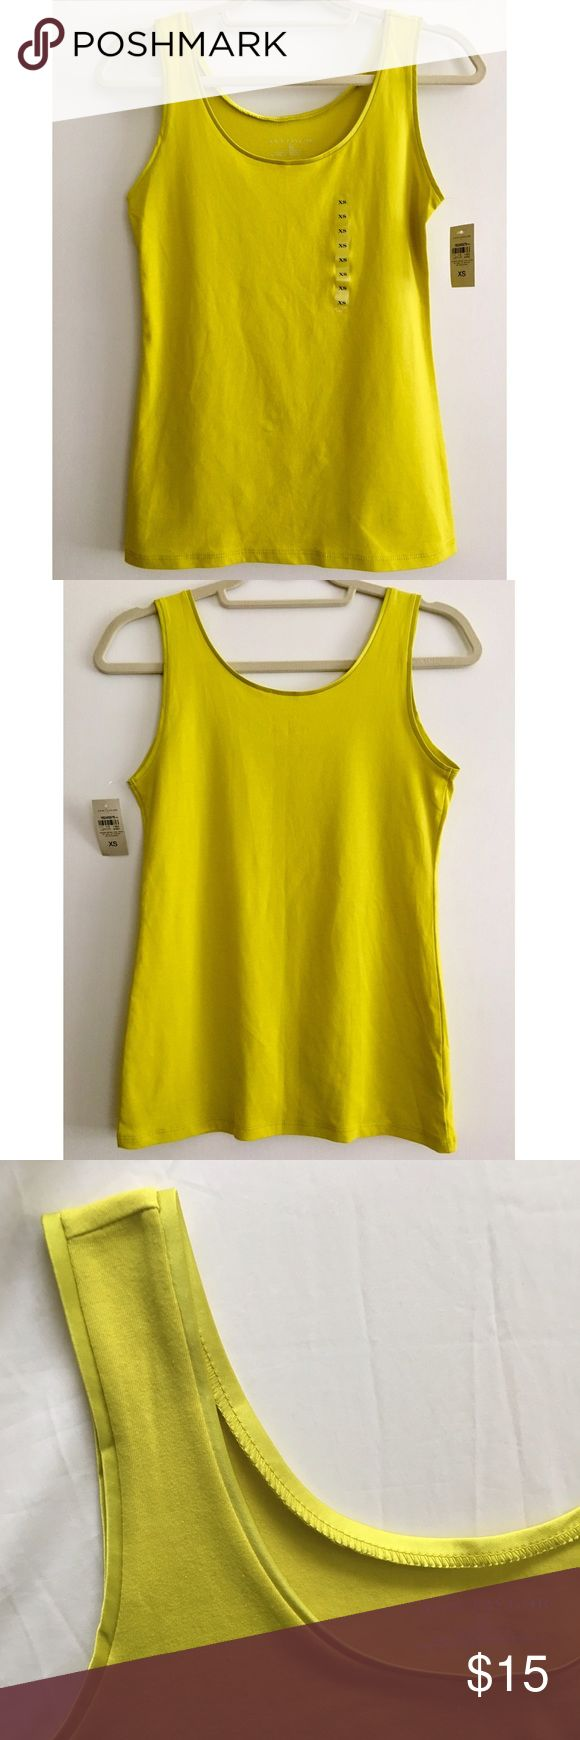 Brand New! Ann Taylor Bright Yellow Tank Brand New Ann Taylor Bright Yellow Tank Top. Tags attached. Polyester trim at neckline and arm holes. Ann Taylor Tops Tank Tops